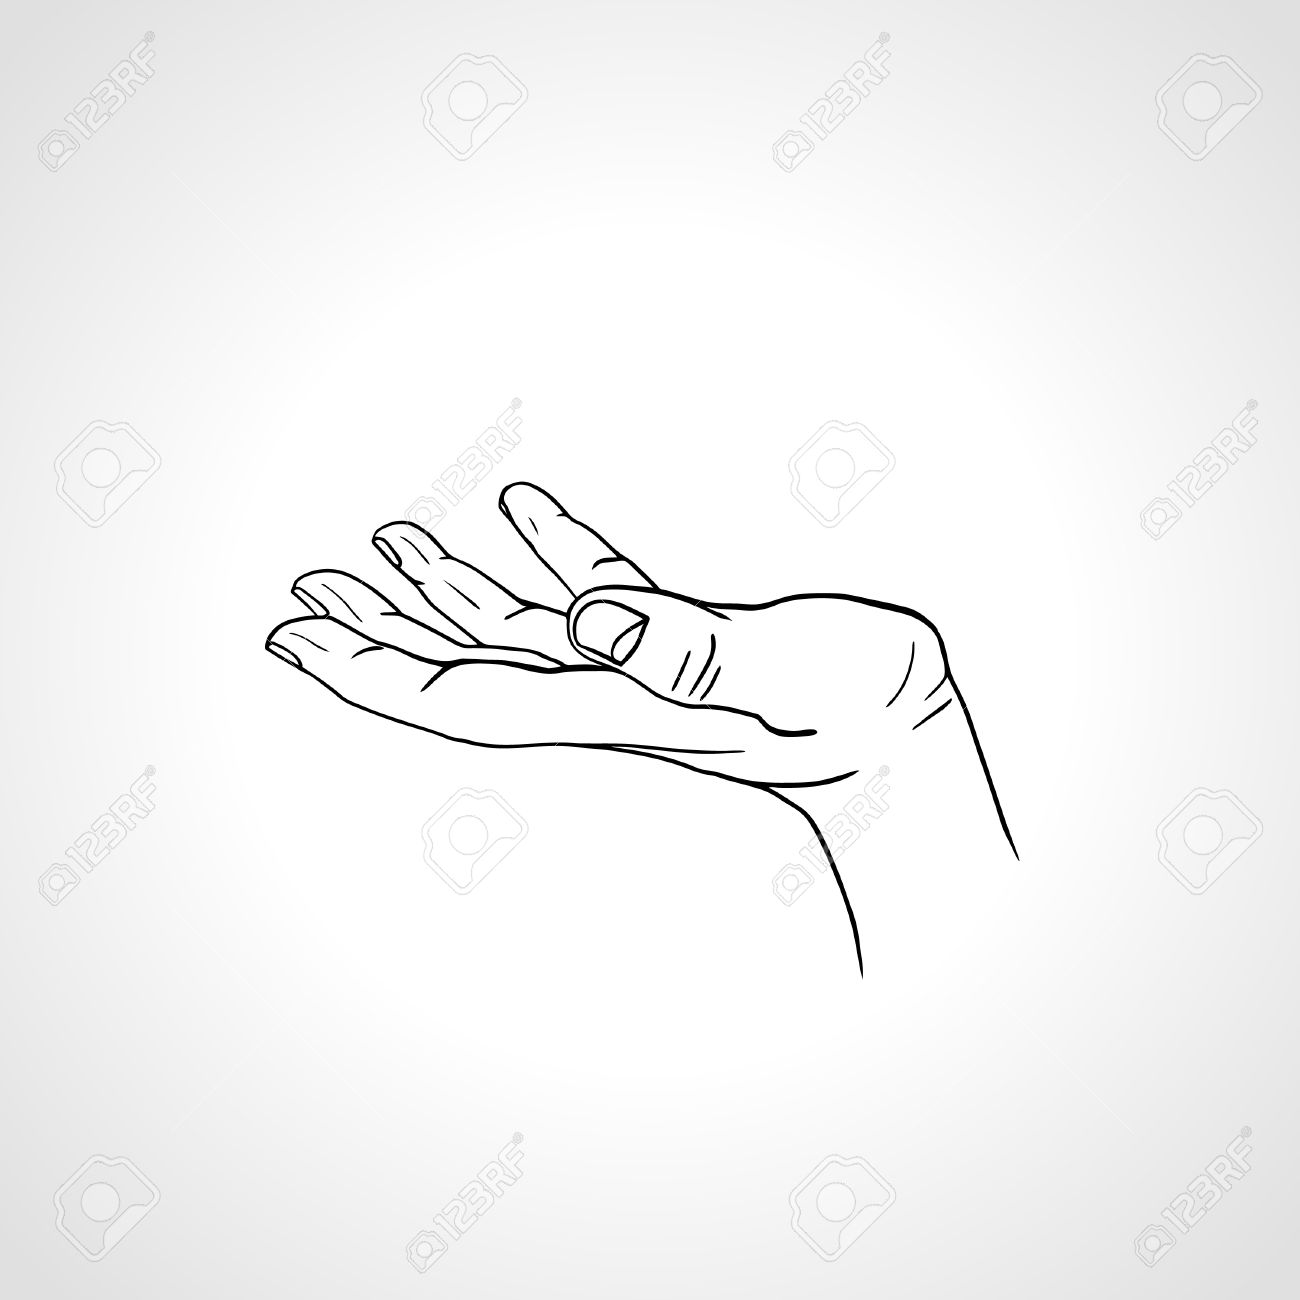 Open Empty Line Art Drawing Hand Isolated On White Background ...